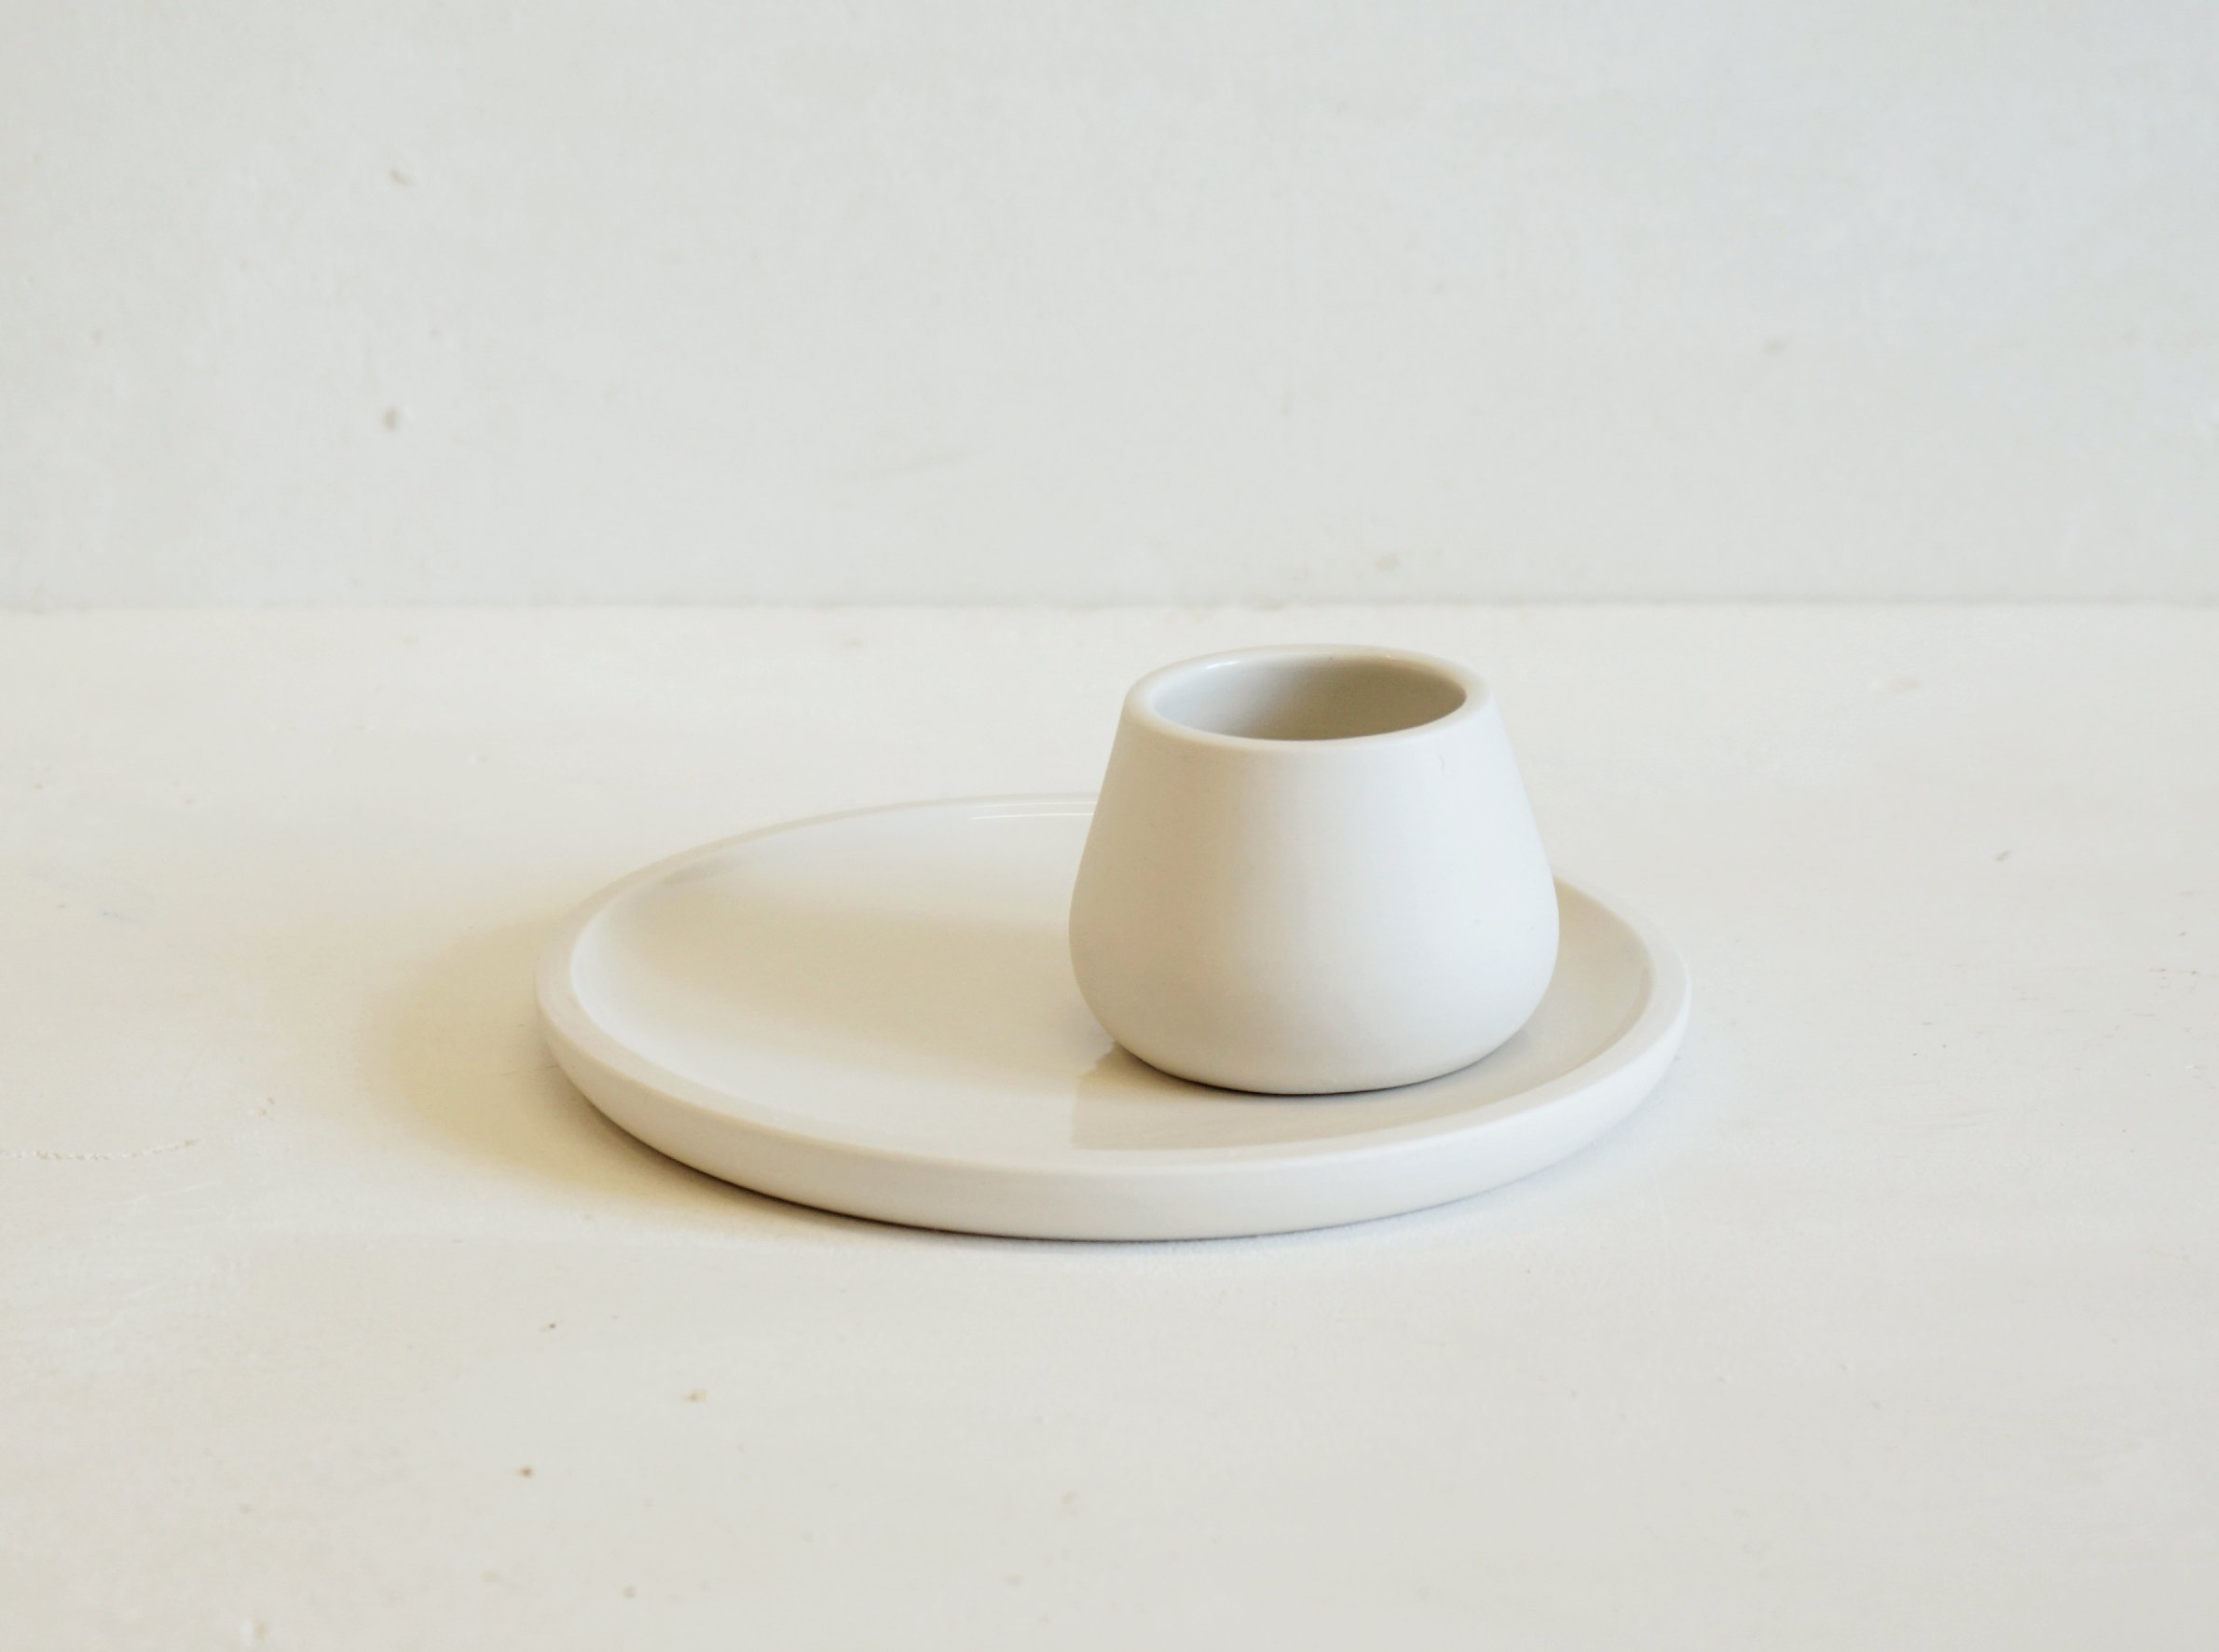 Simple Egg Cup Plate hand thrown in porcelain